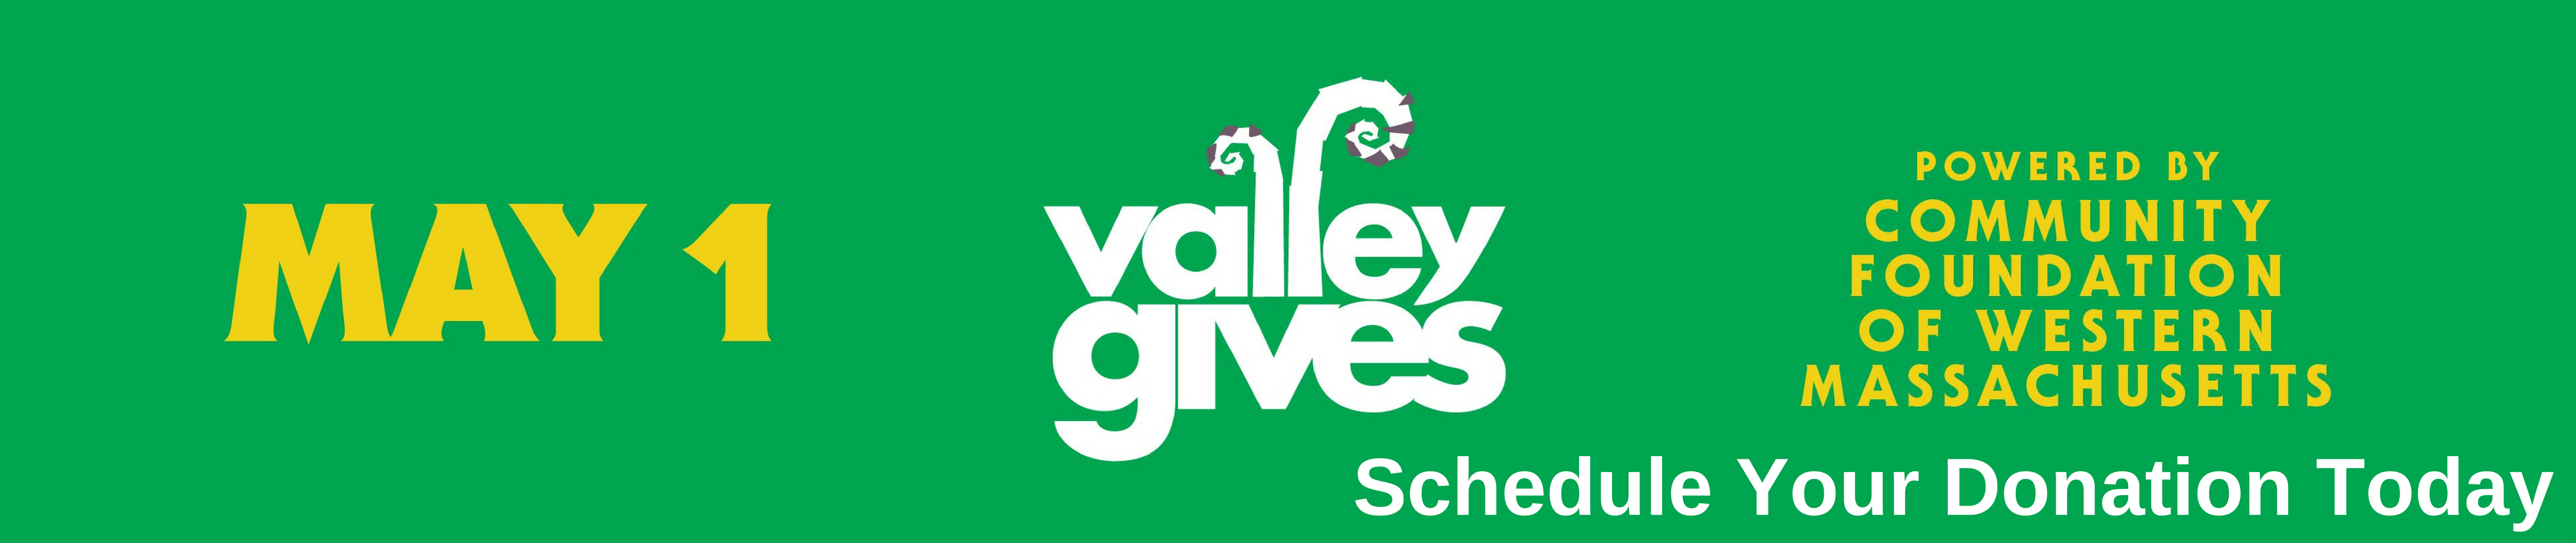 Valley Gives Day Logo